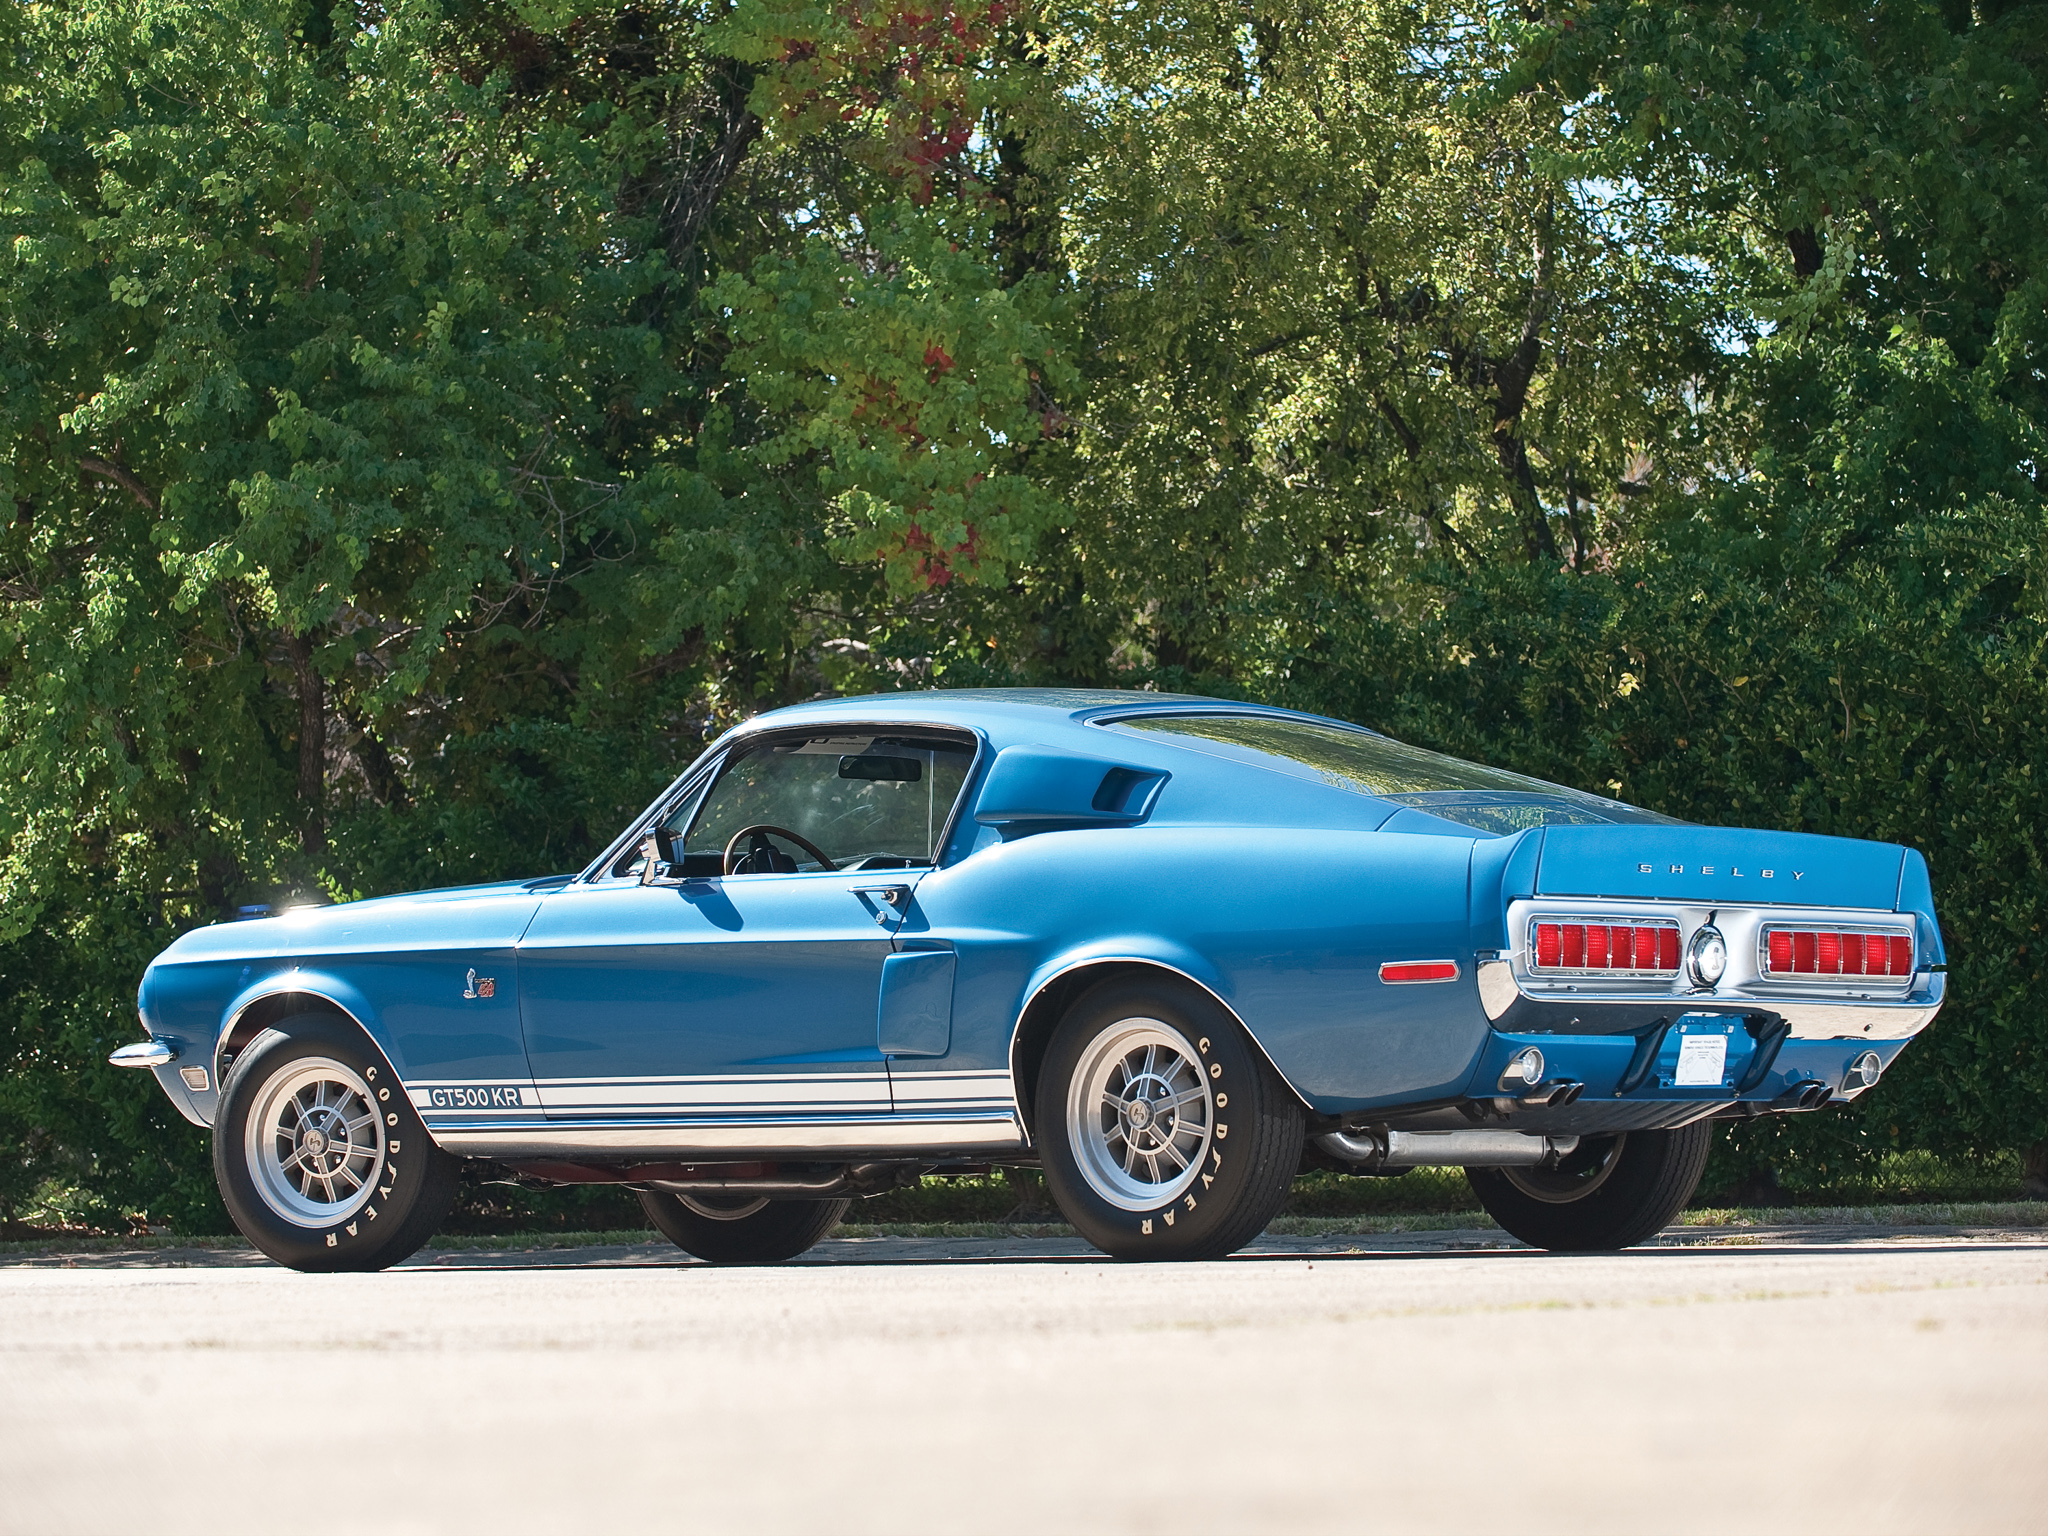 1968 Ford Mustang Shelby GT500 KR photo - 1